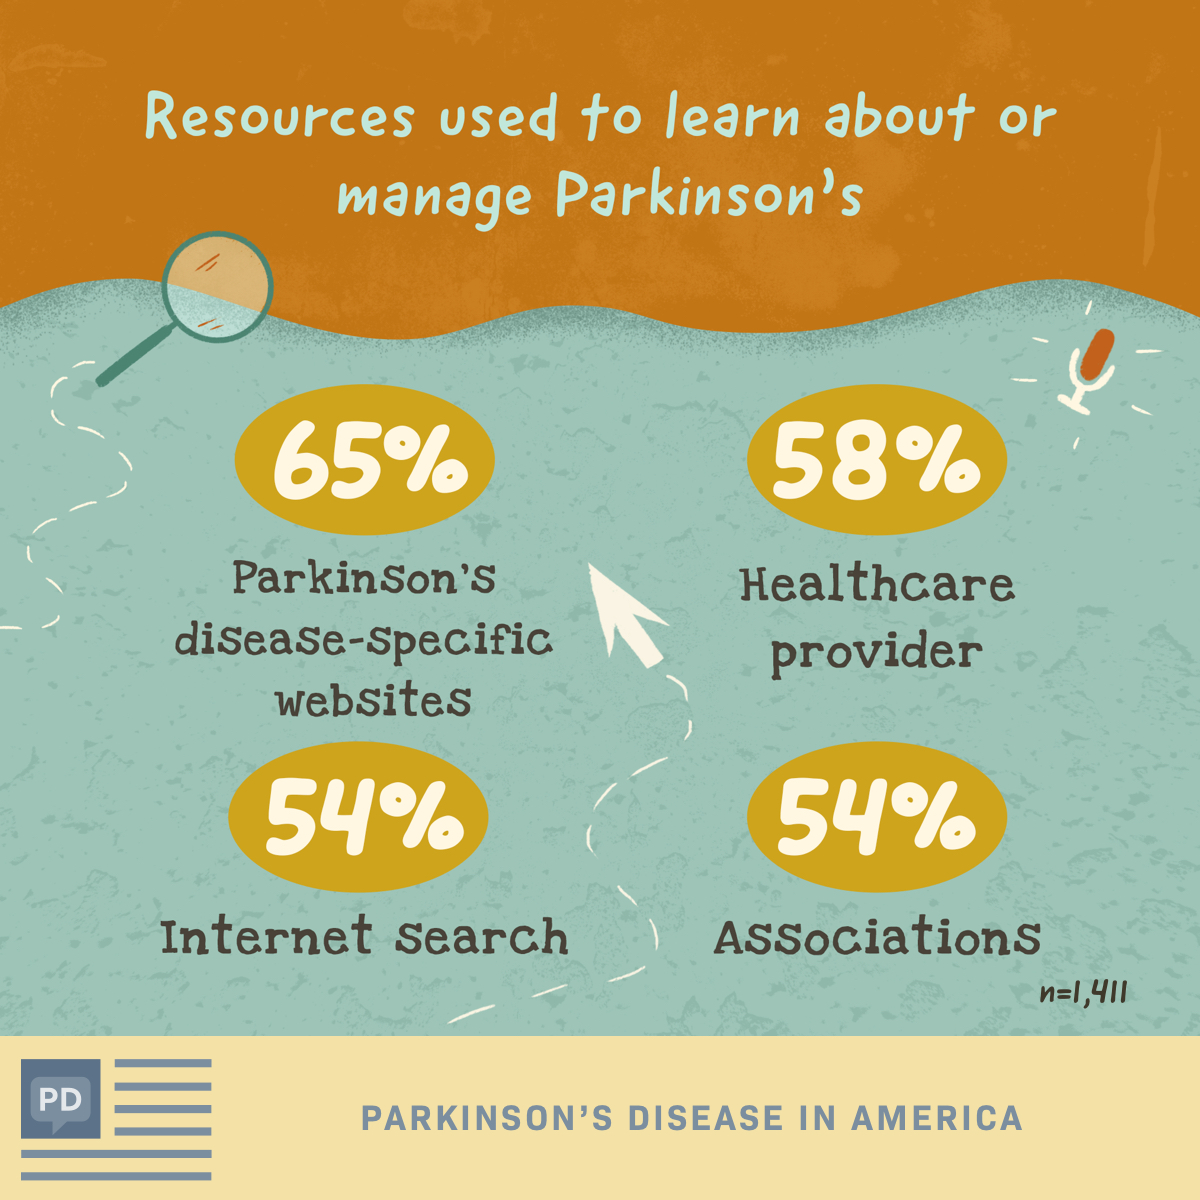 Top resources that Parkinson's disease patients use to learn more about or manage their condition